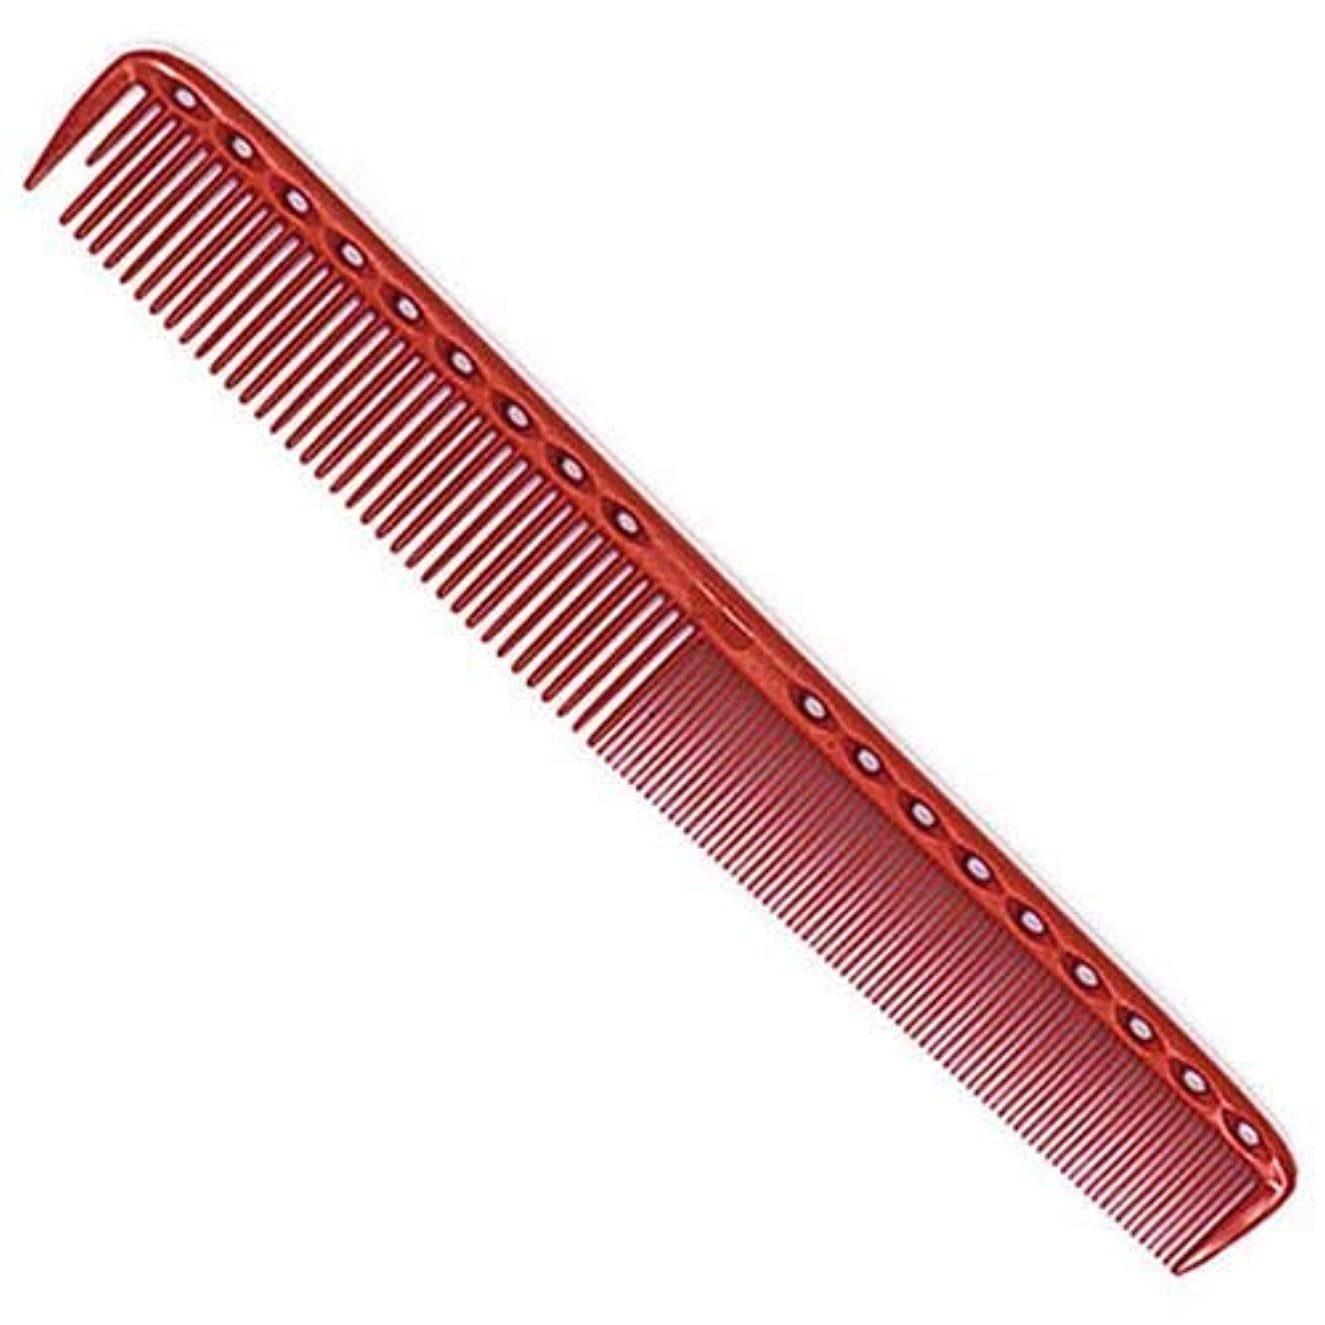 YS Park 335 Fine Cutting Comb (Extra Long) - Red [並行輸入品]